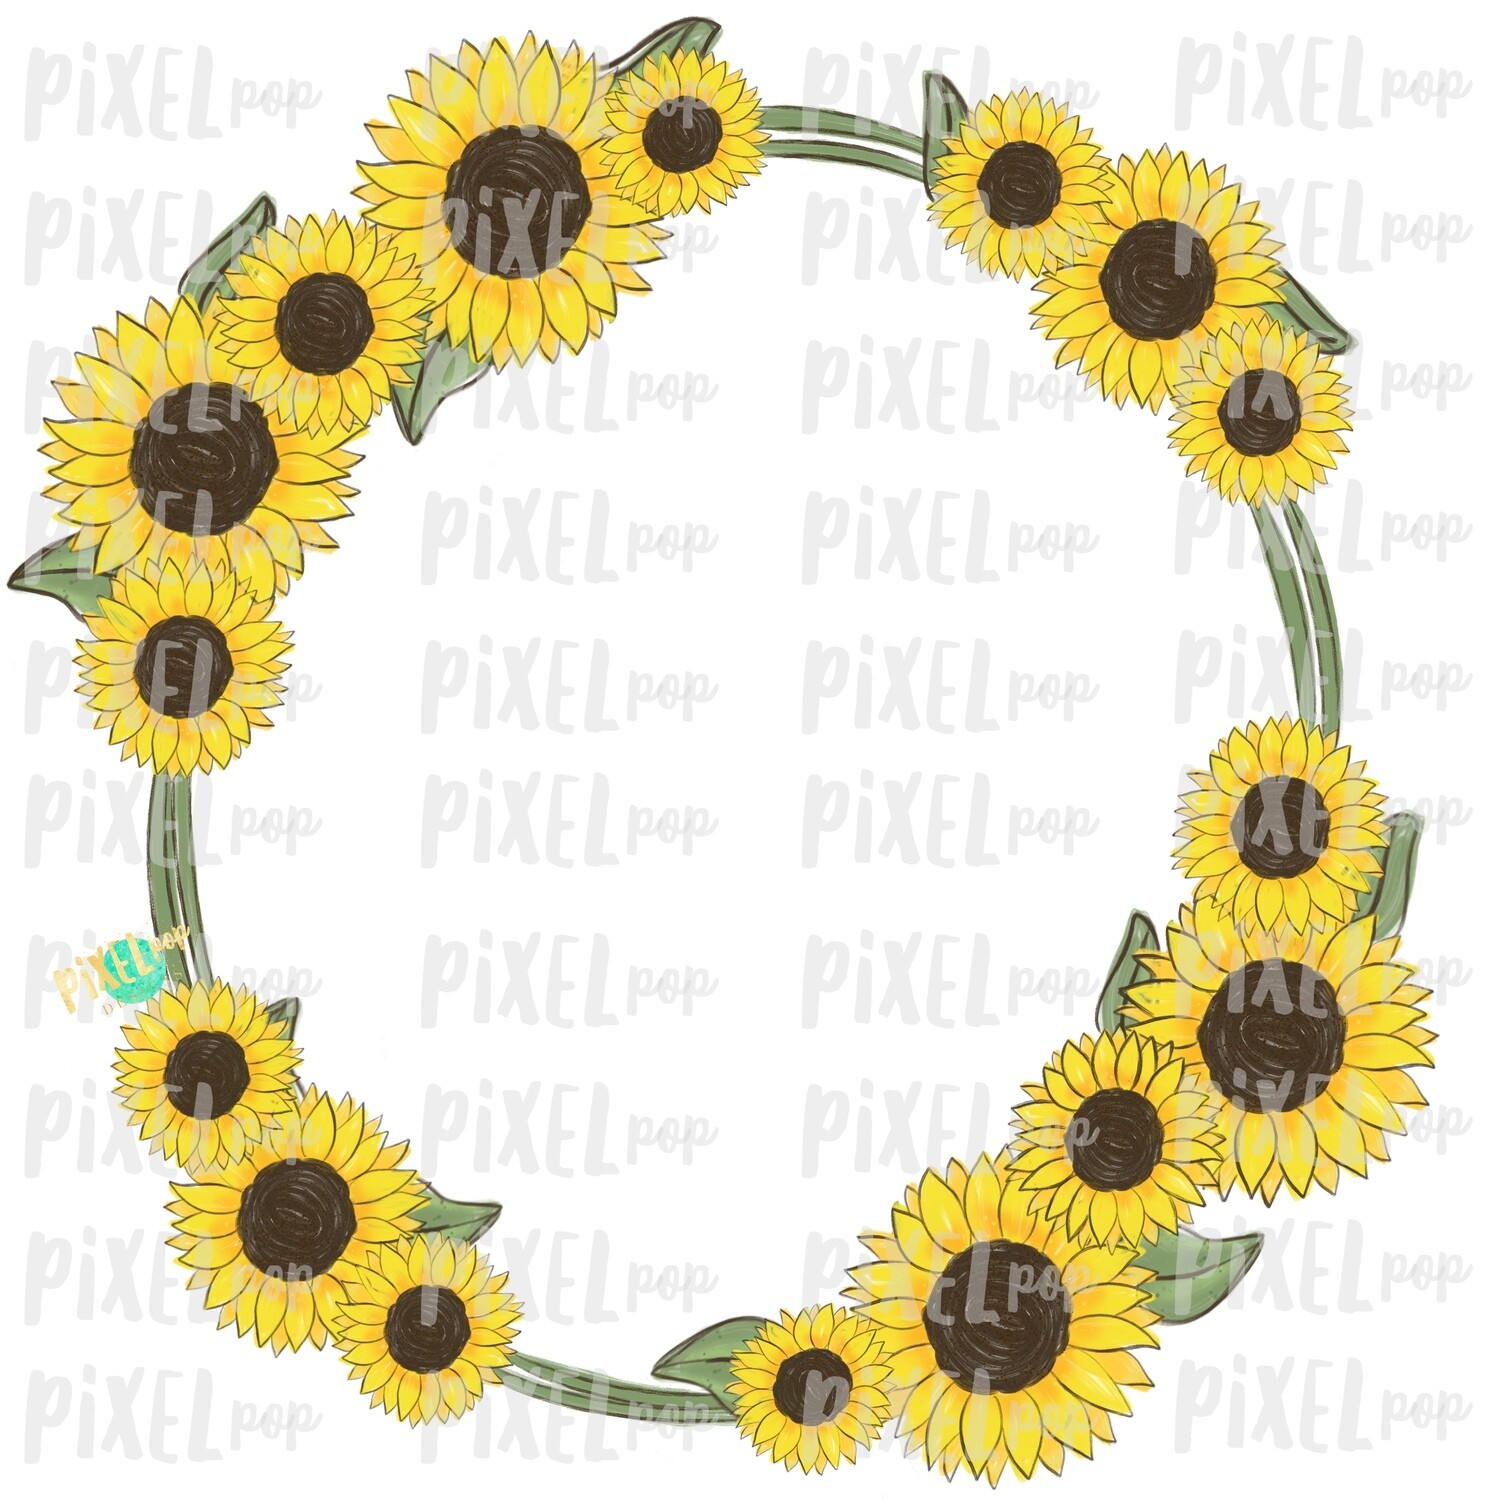 Sunflowers Frame PNG | Sunflowers | Sunflowers Design | Sublimation | Digital Painting | Spring Flowers | Wreath | Floral Clip Art